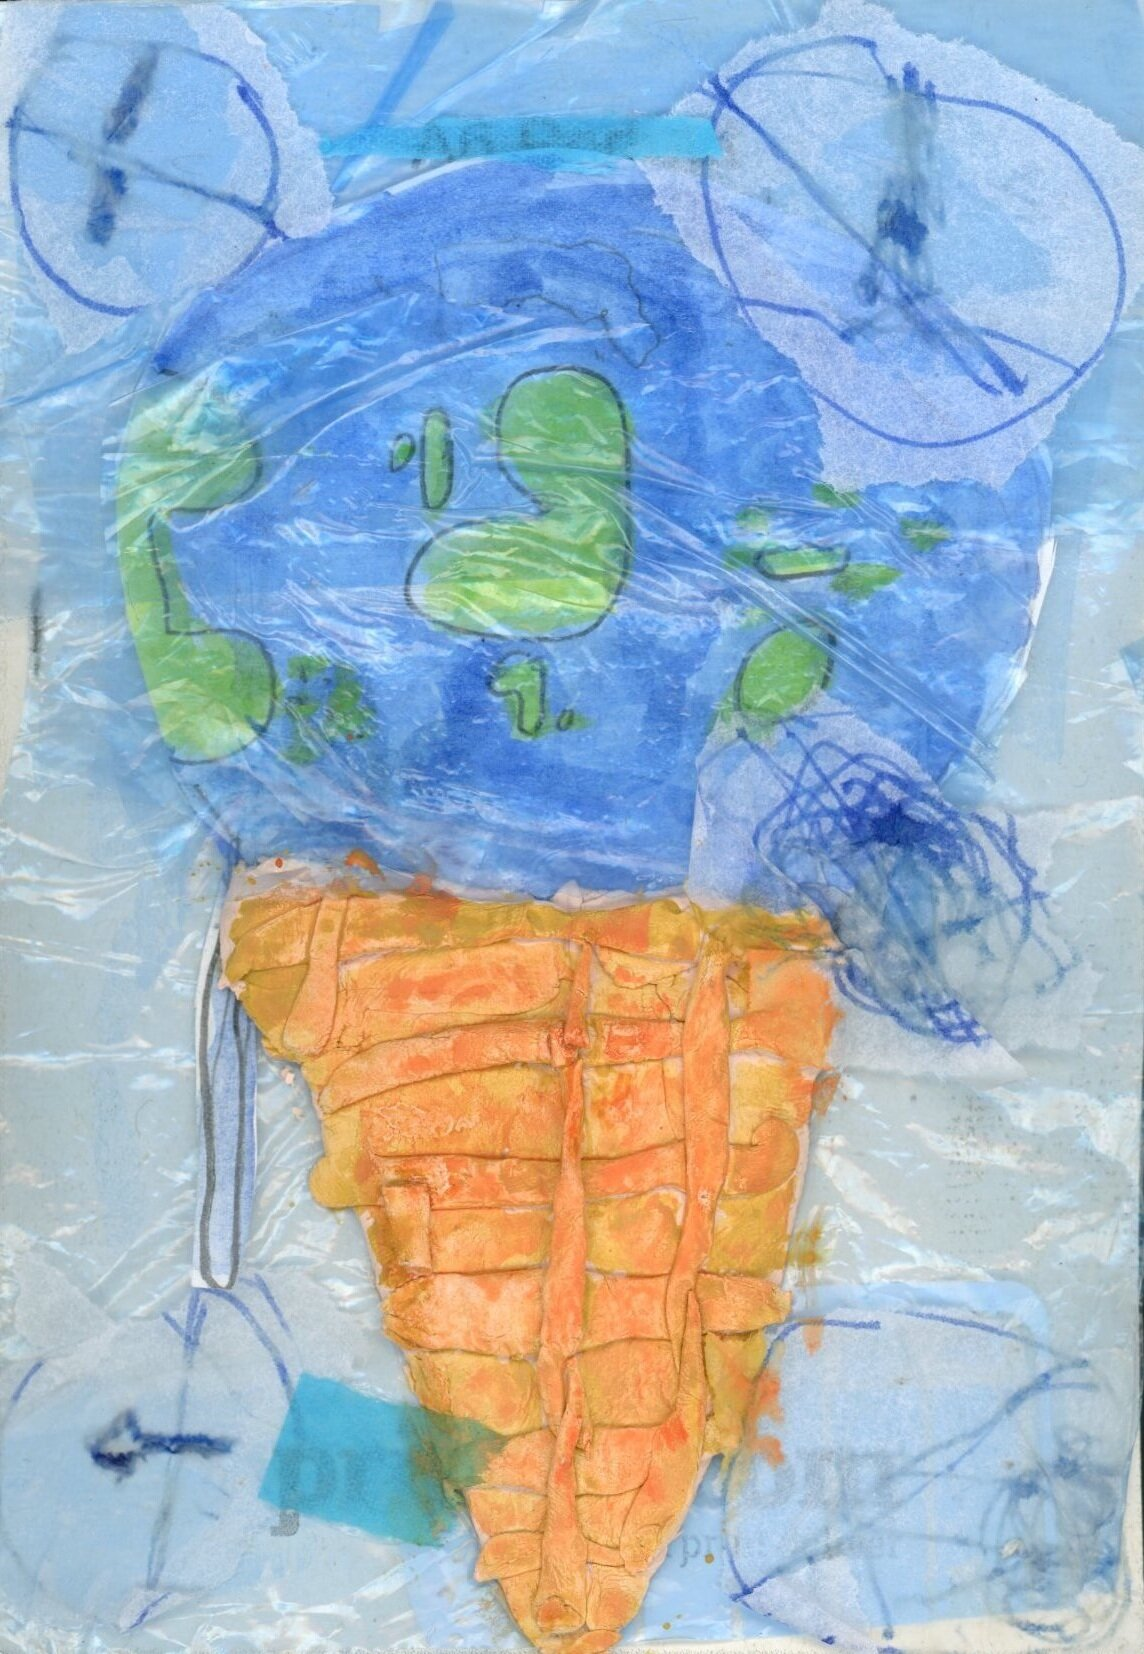 Prize Winner  Strongest visual message, Reggie aged 7